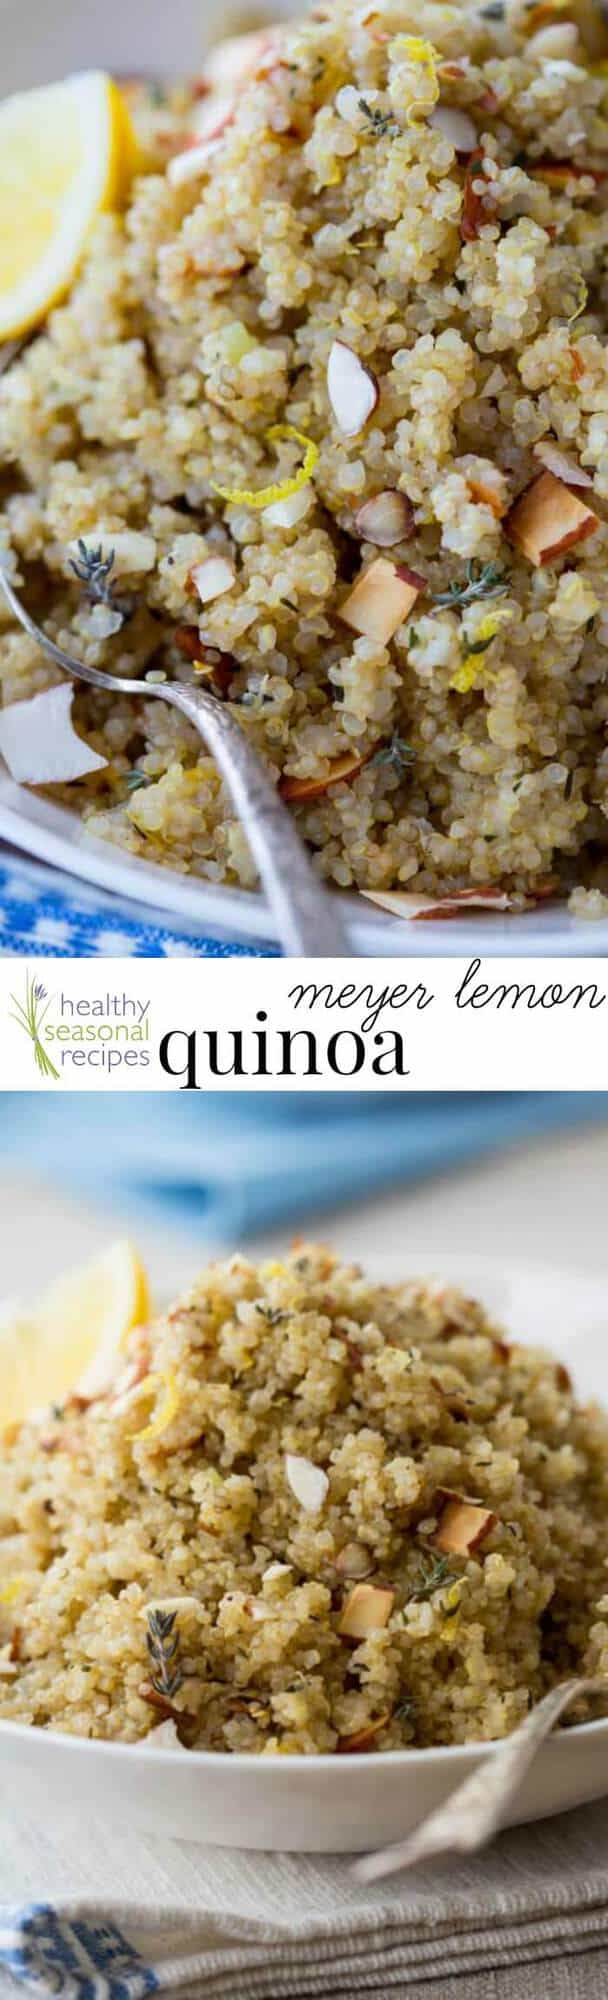 This meyer lemon quinoa comes together in about 30 minutes and is a simple, yet flavorful gluten-free side dish. Perfect with fish, veggies, & in salads! #lemon #meyerlemon #quinoa #glutenfree #sidedish #30minutes #easy #healthy #wholefoods #cleaneating